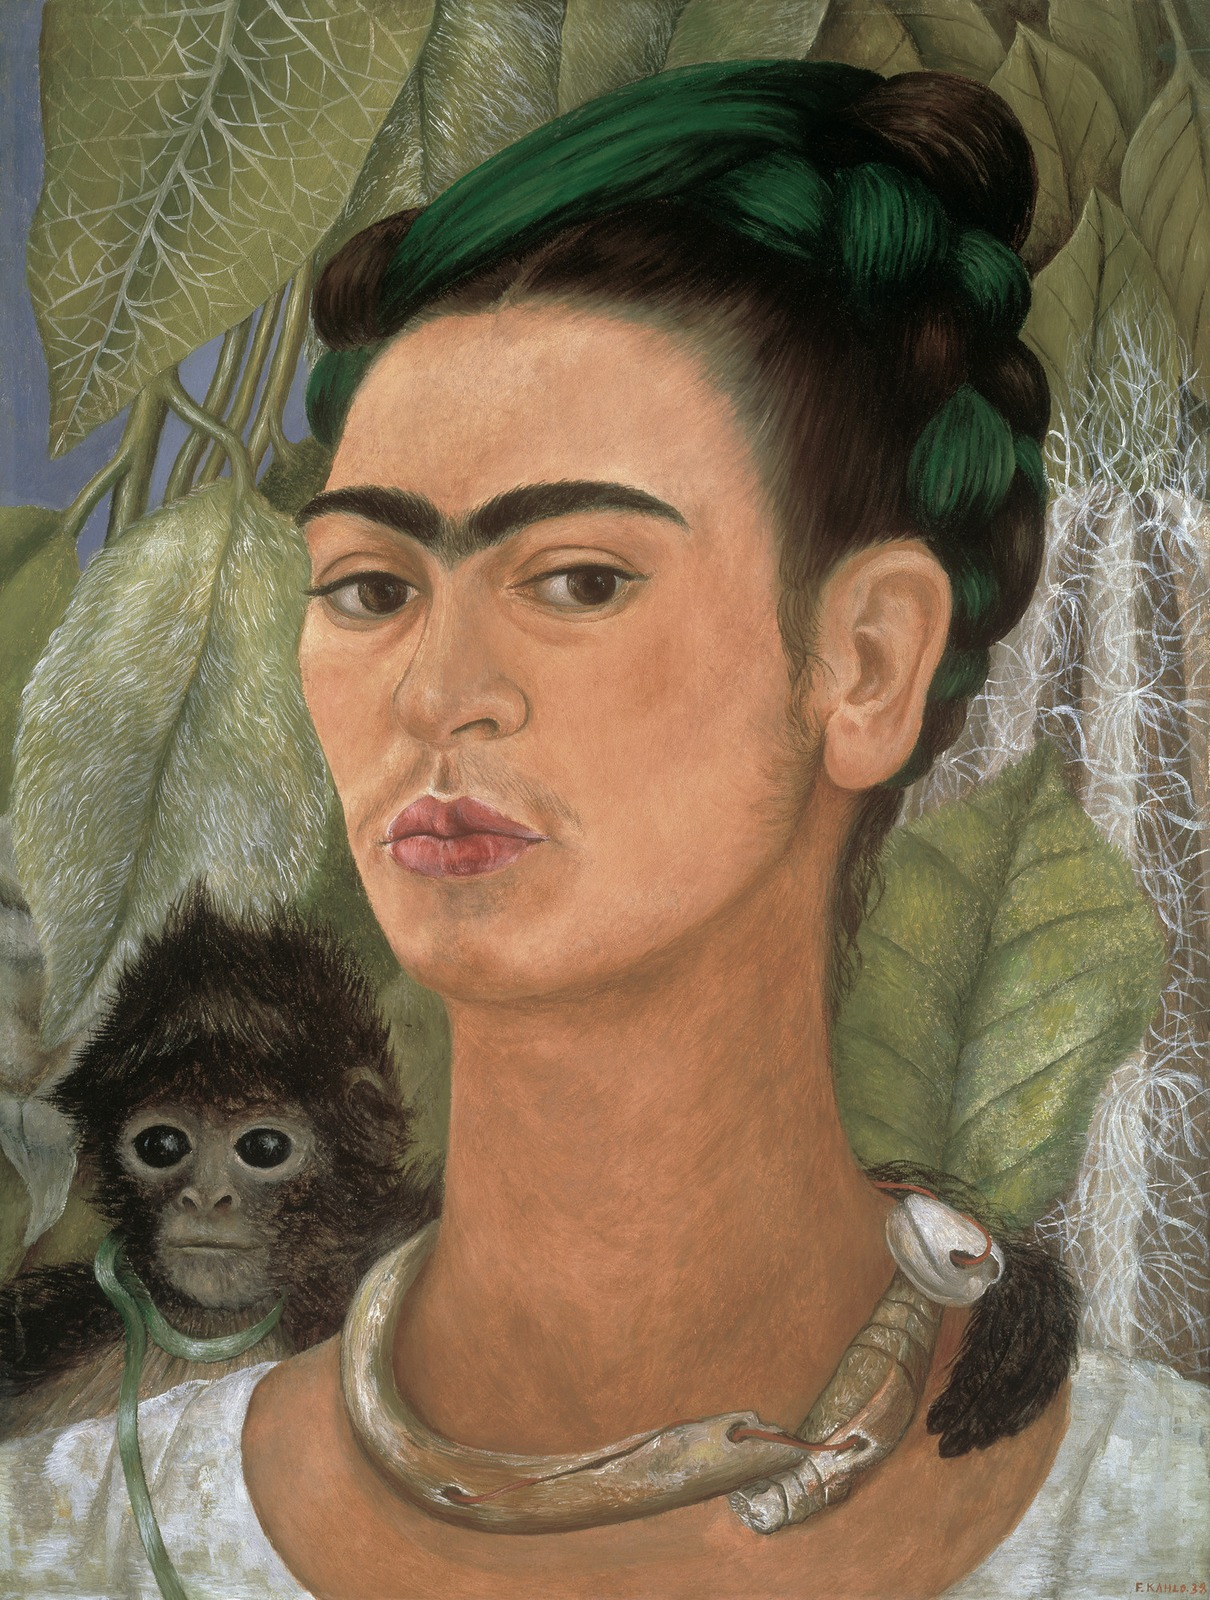 frida kahlo a life in pain essay The dream-like fantasy atmosphere she painted is a metaphor to her own life her pain and joy were represented by frida kahlo or any similar recent essays.